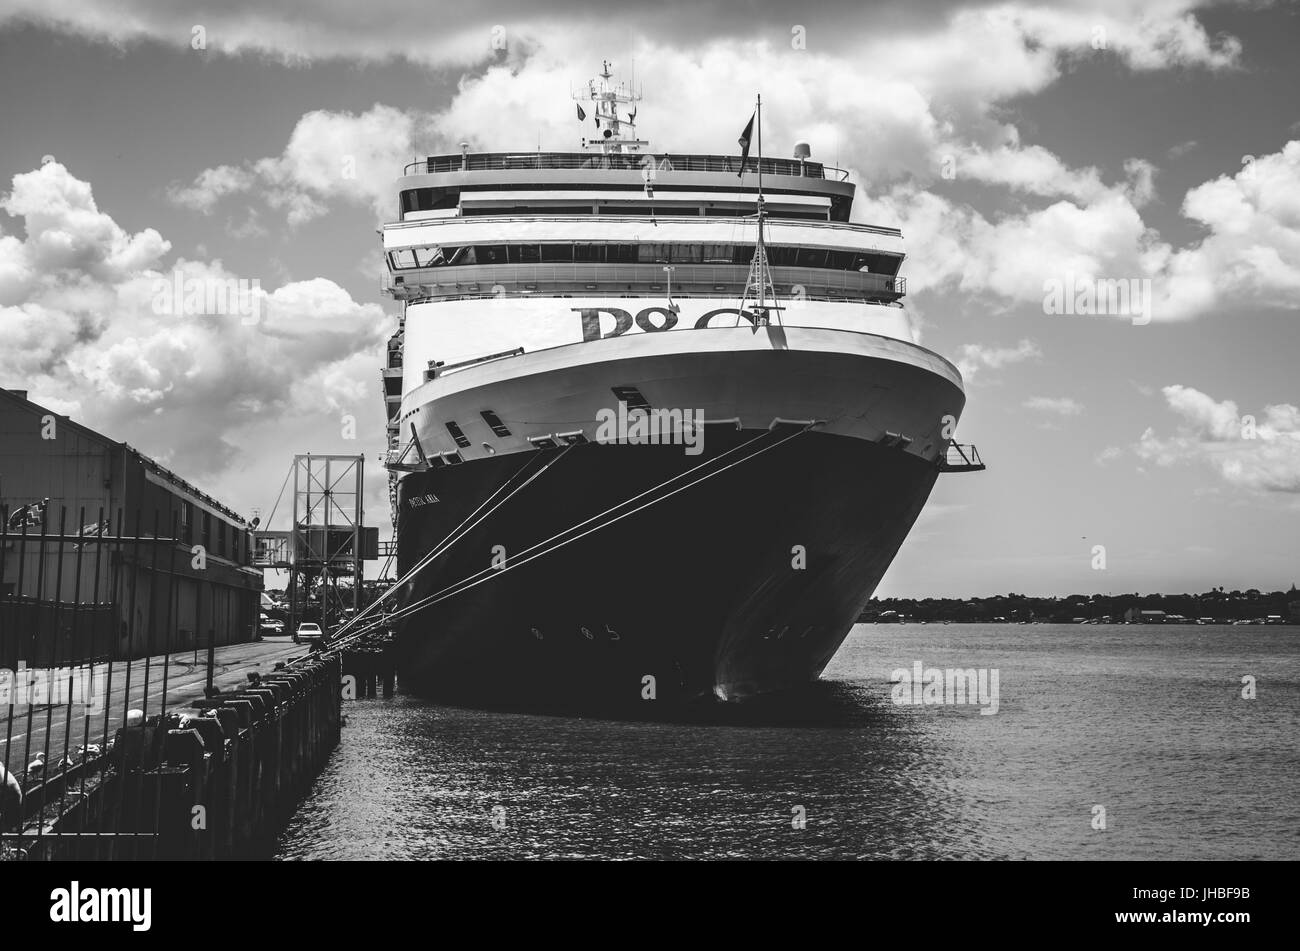 Big Cruise Ship in Auckland, New Zealand Stock Photo